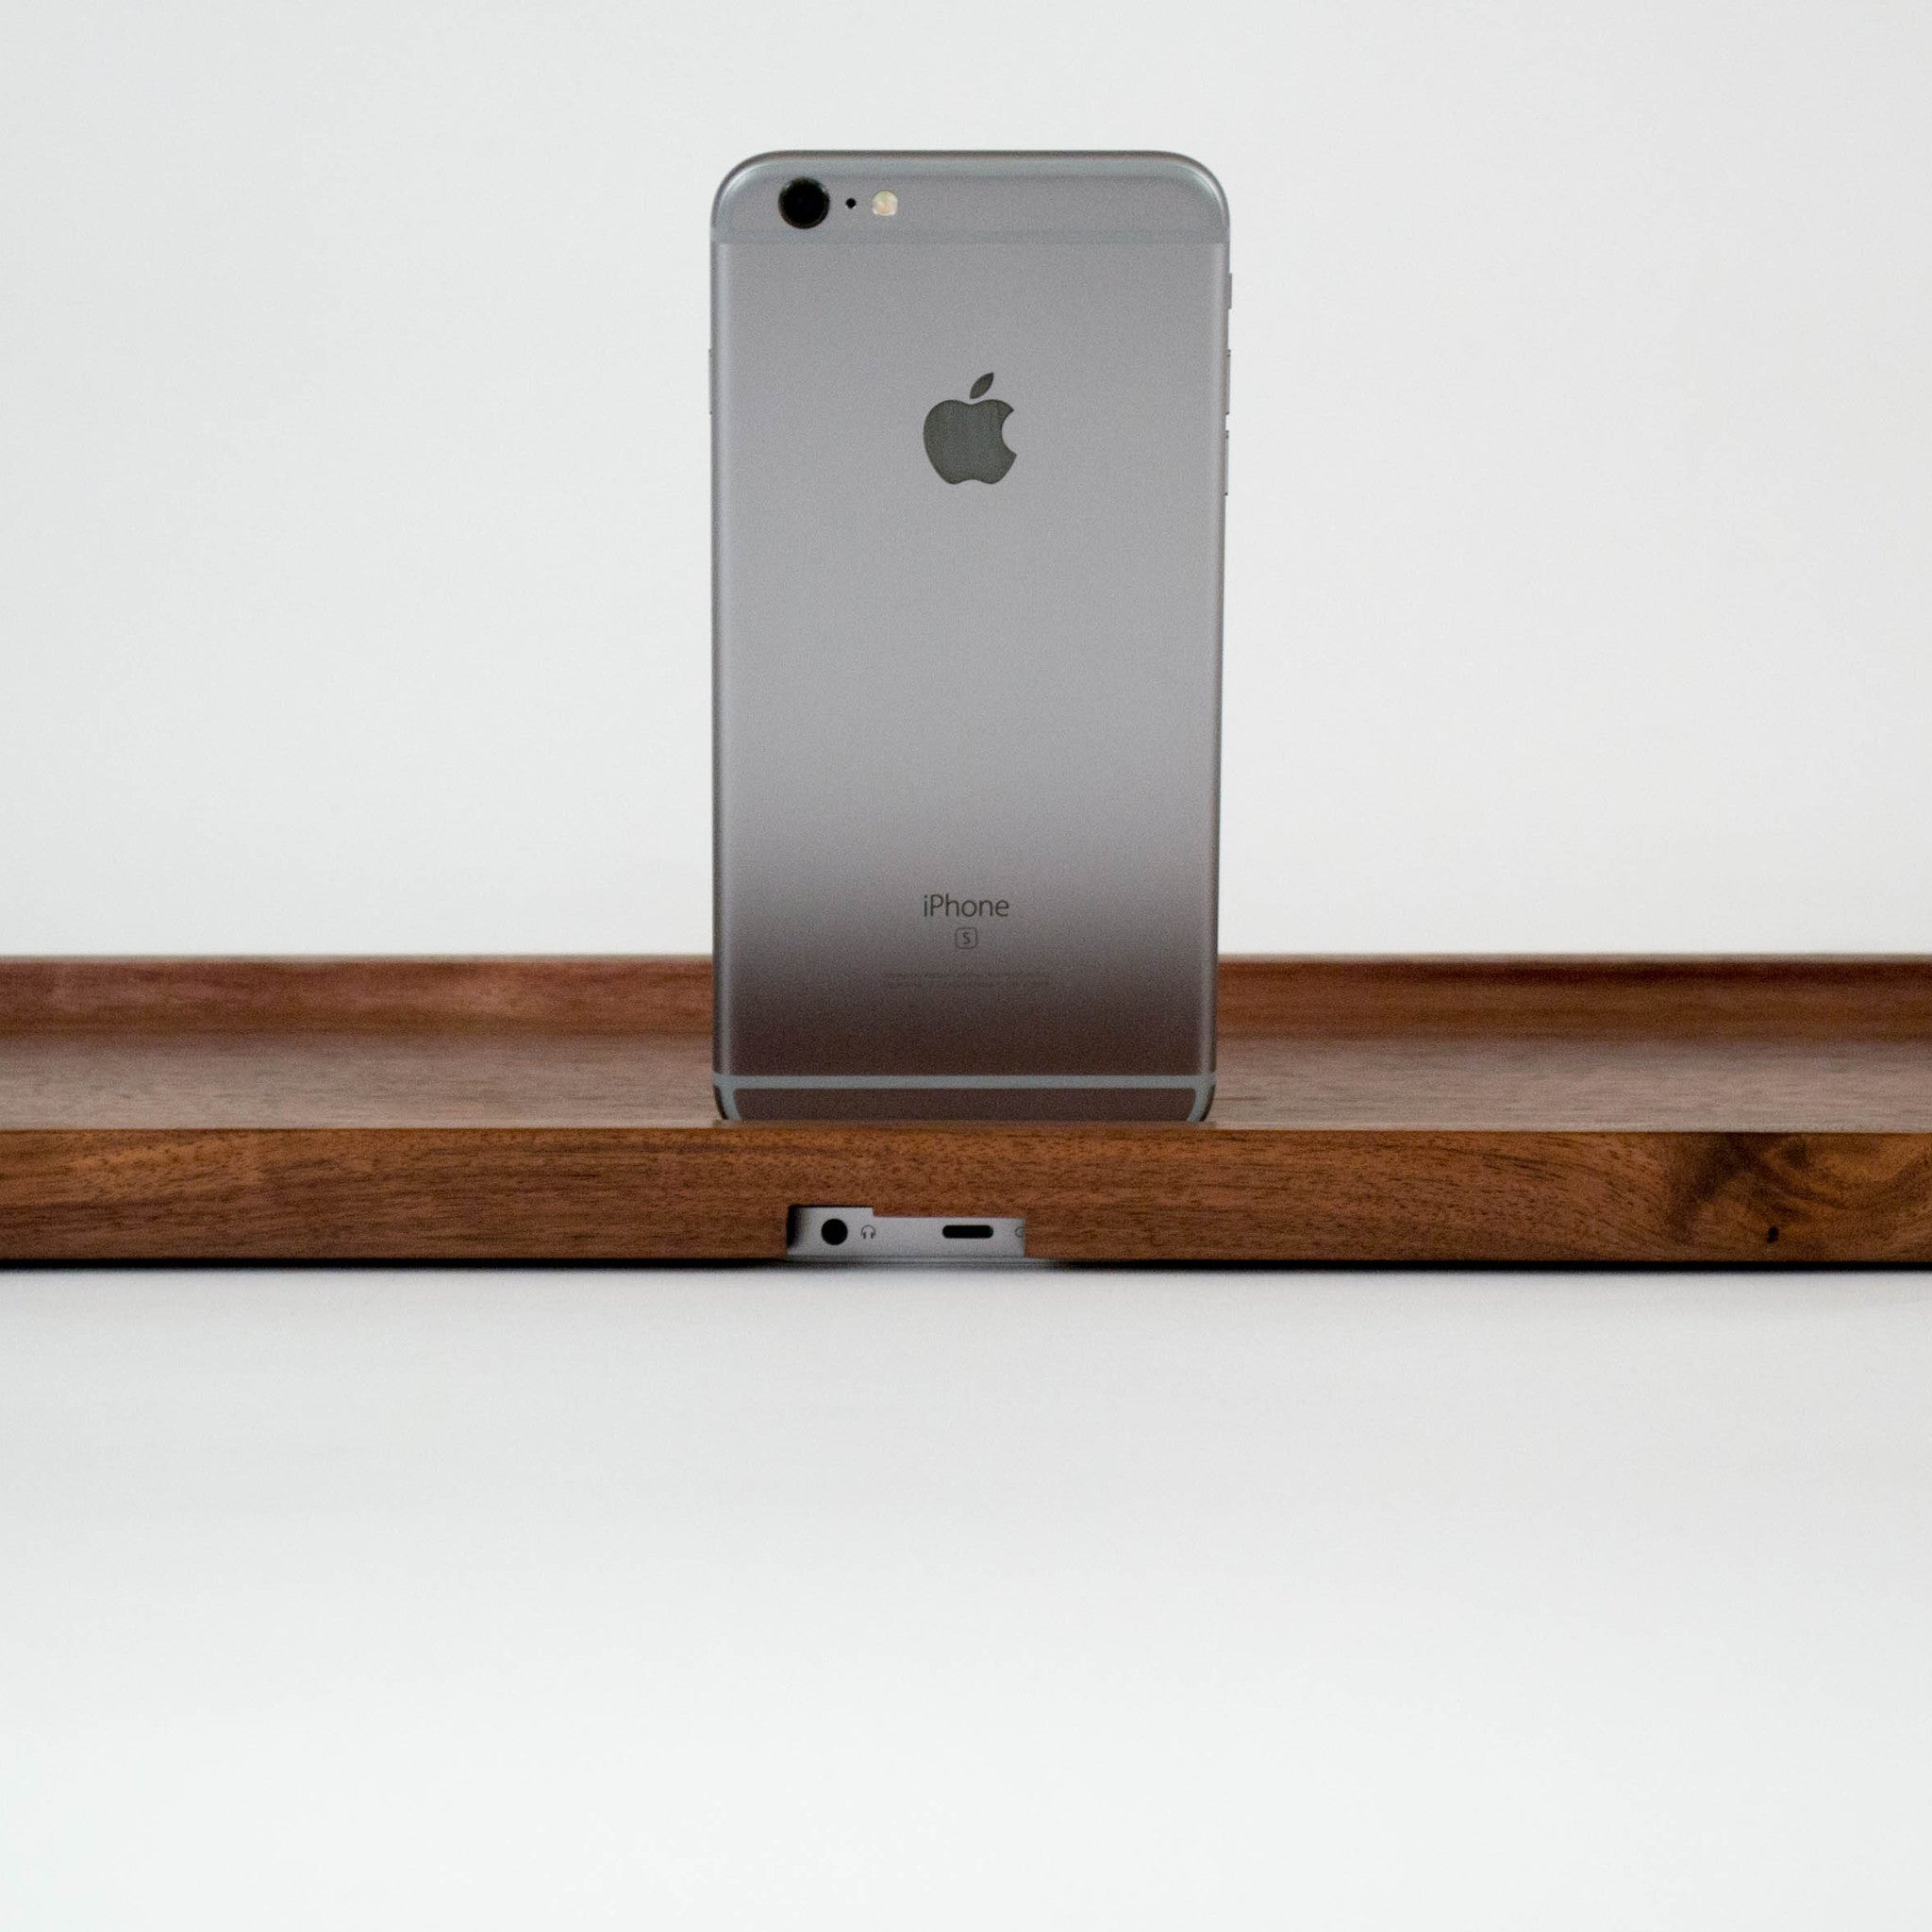 iPhone Charging Tray